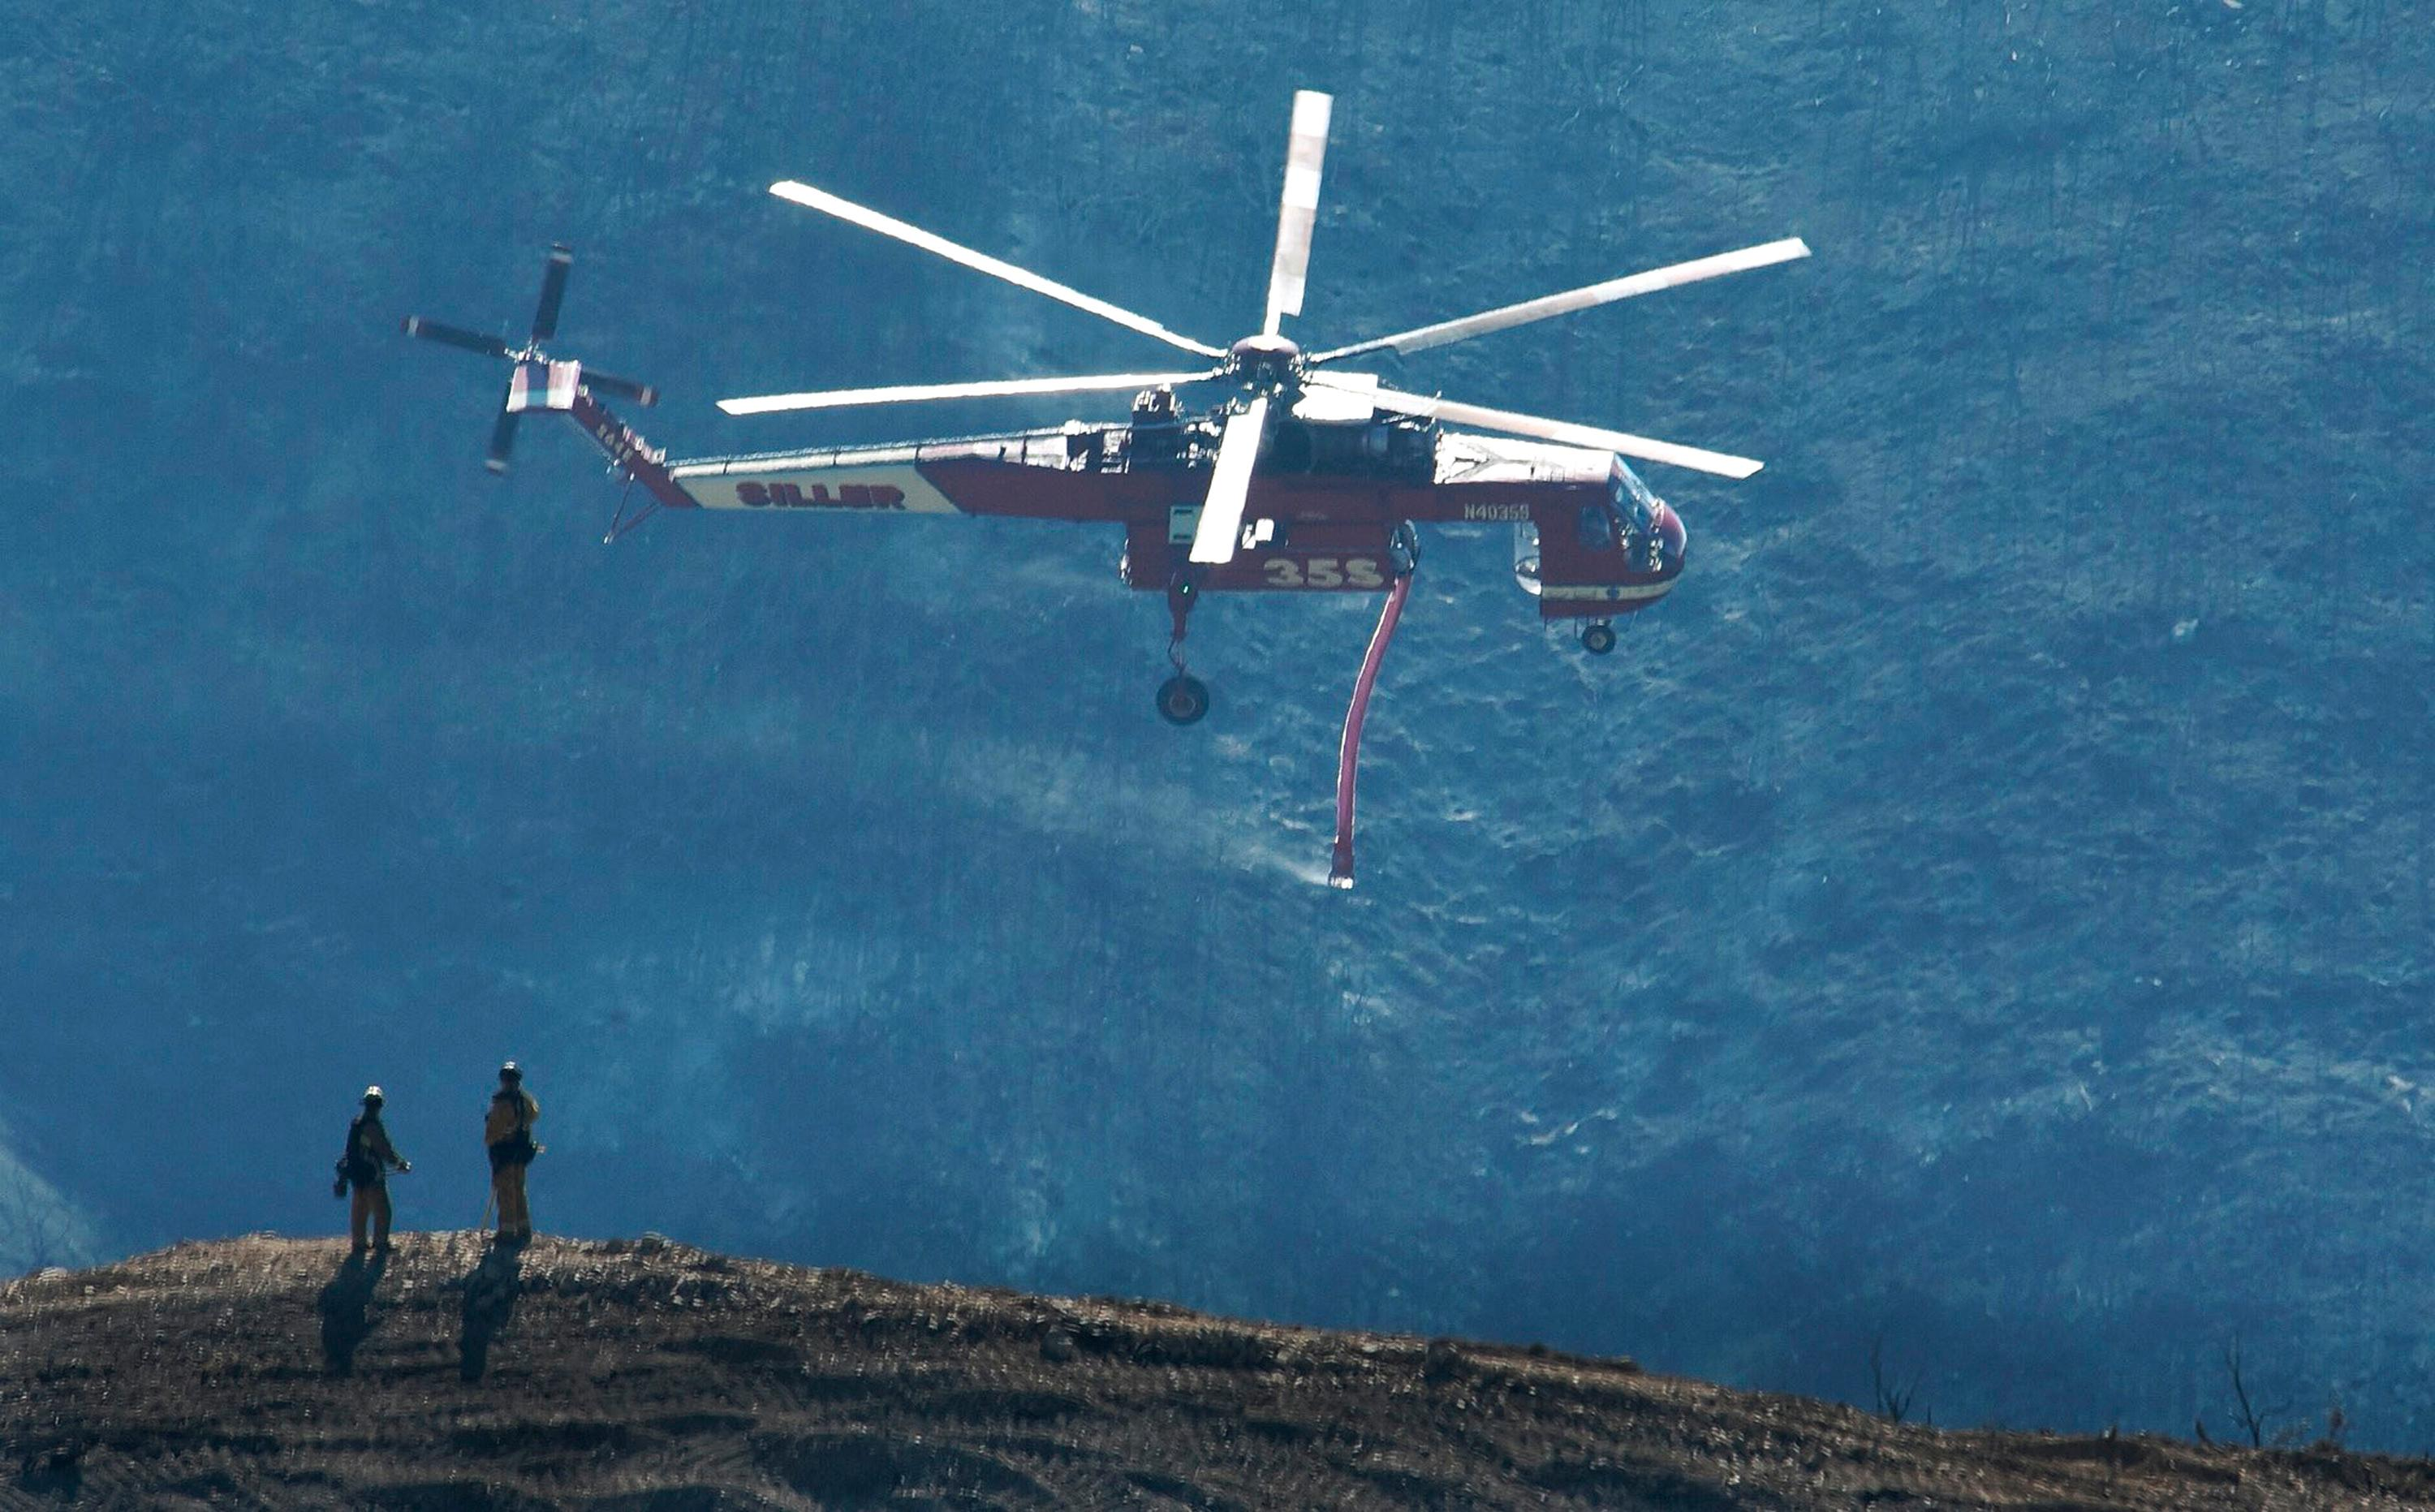 In this photo provided by the Santa Barbara County Fire Department, a Skycrane helicopter passes firefighters atop a hillside while coming in for a water drop below E. Camino Cielo in Santa Barbara, Calif., Tuesday, Dec. 19, 2017. Although some evacuations were lifted Monday and more residents were being allowed to return Tuesday, hillside homes are still threatened in Santa Barbara, where firefighters mounted an aggressive air attack on stubborn flames. Officials estimate that the Thomas Fire will grow to become the biggest in California history before full containment, expected by Jan. 7, 2018. (Mike Eliason/Santa Barbara County Fire Department via AP)